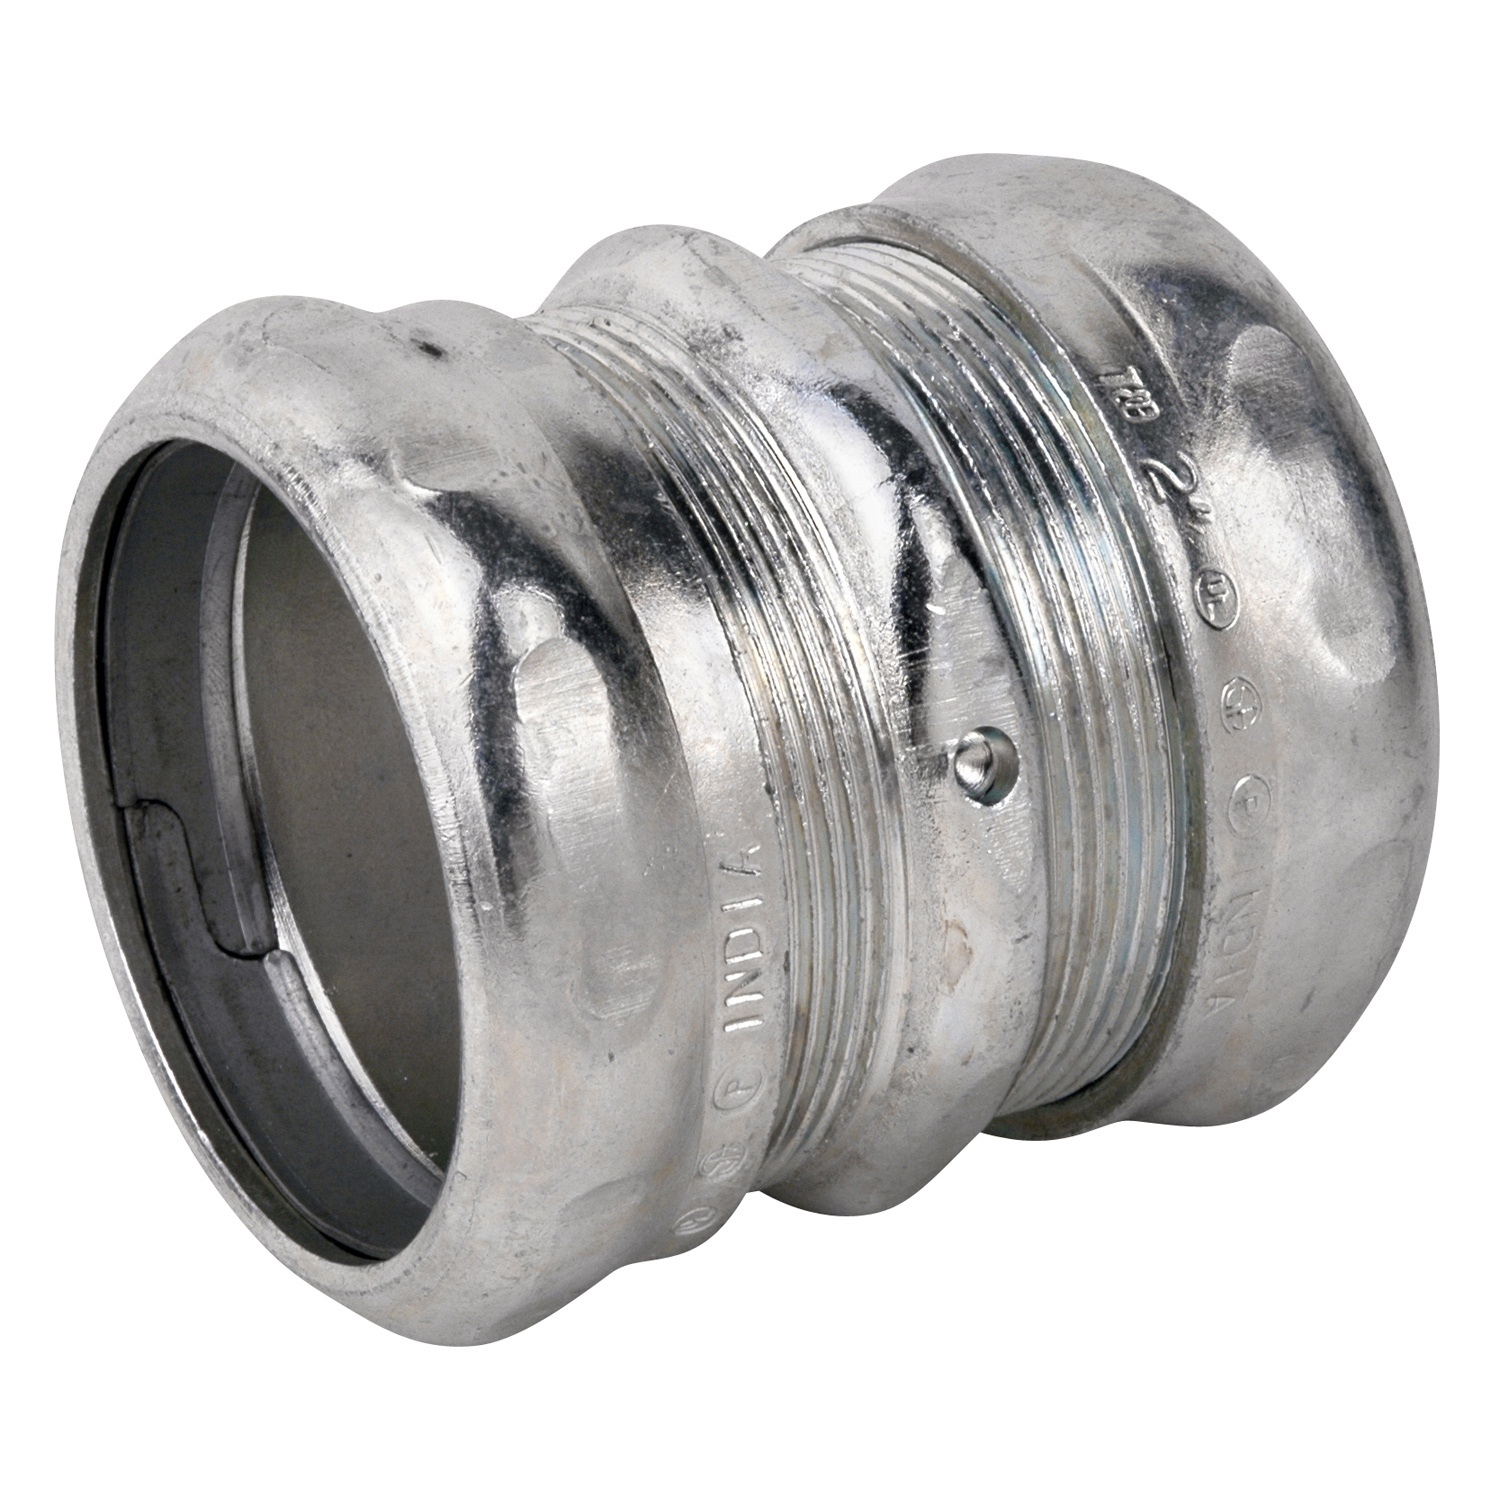 STCTK116A 2 INCH COMPRESSION COUPLING, STEEL-ZINC PLATED, CONCRETE TIGHT. FOR USE WITH EMT CONDUIT., STEEL CITY